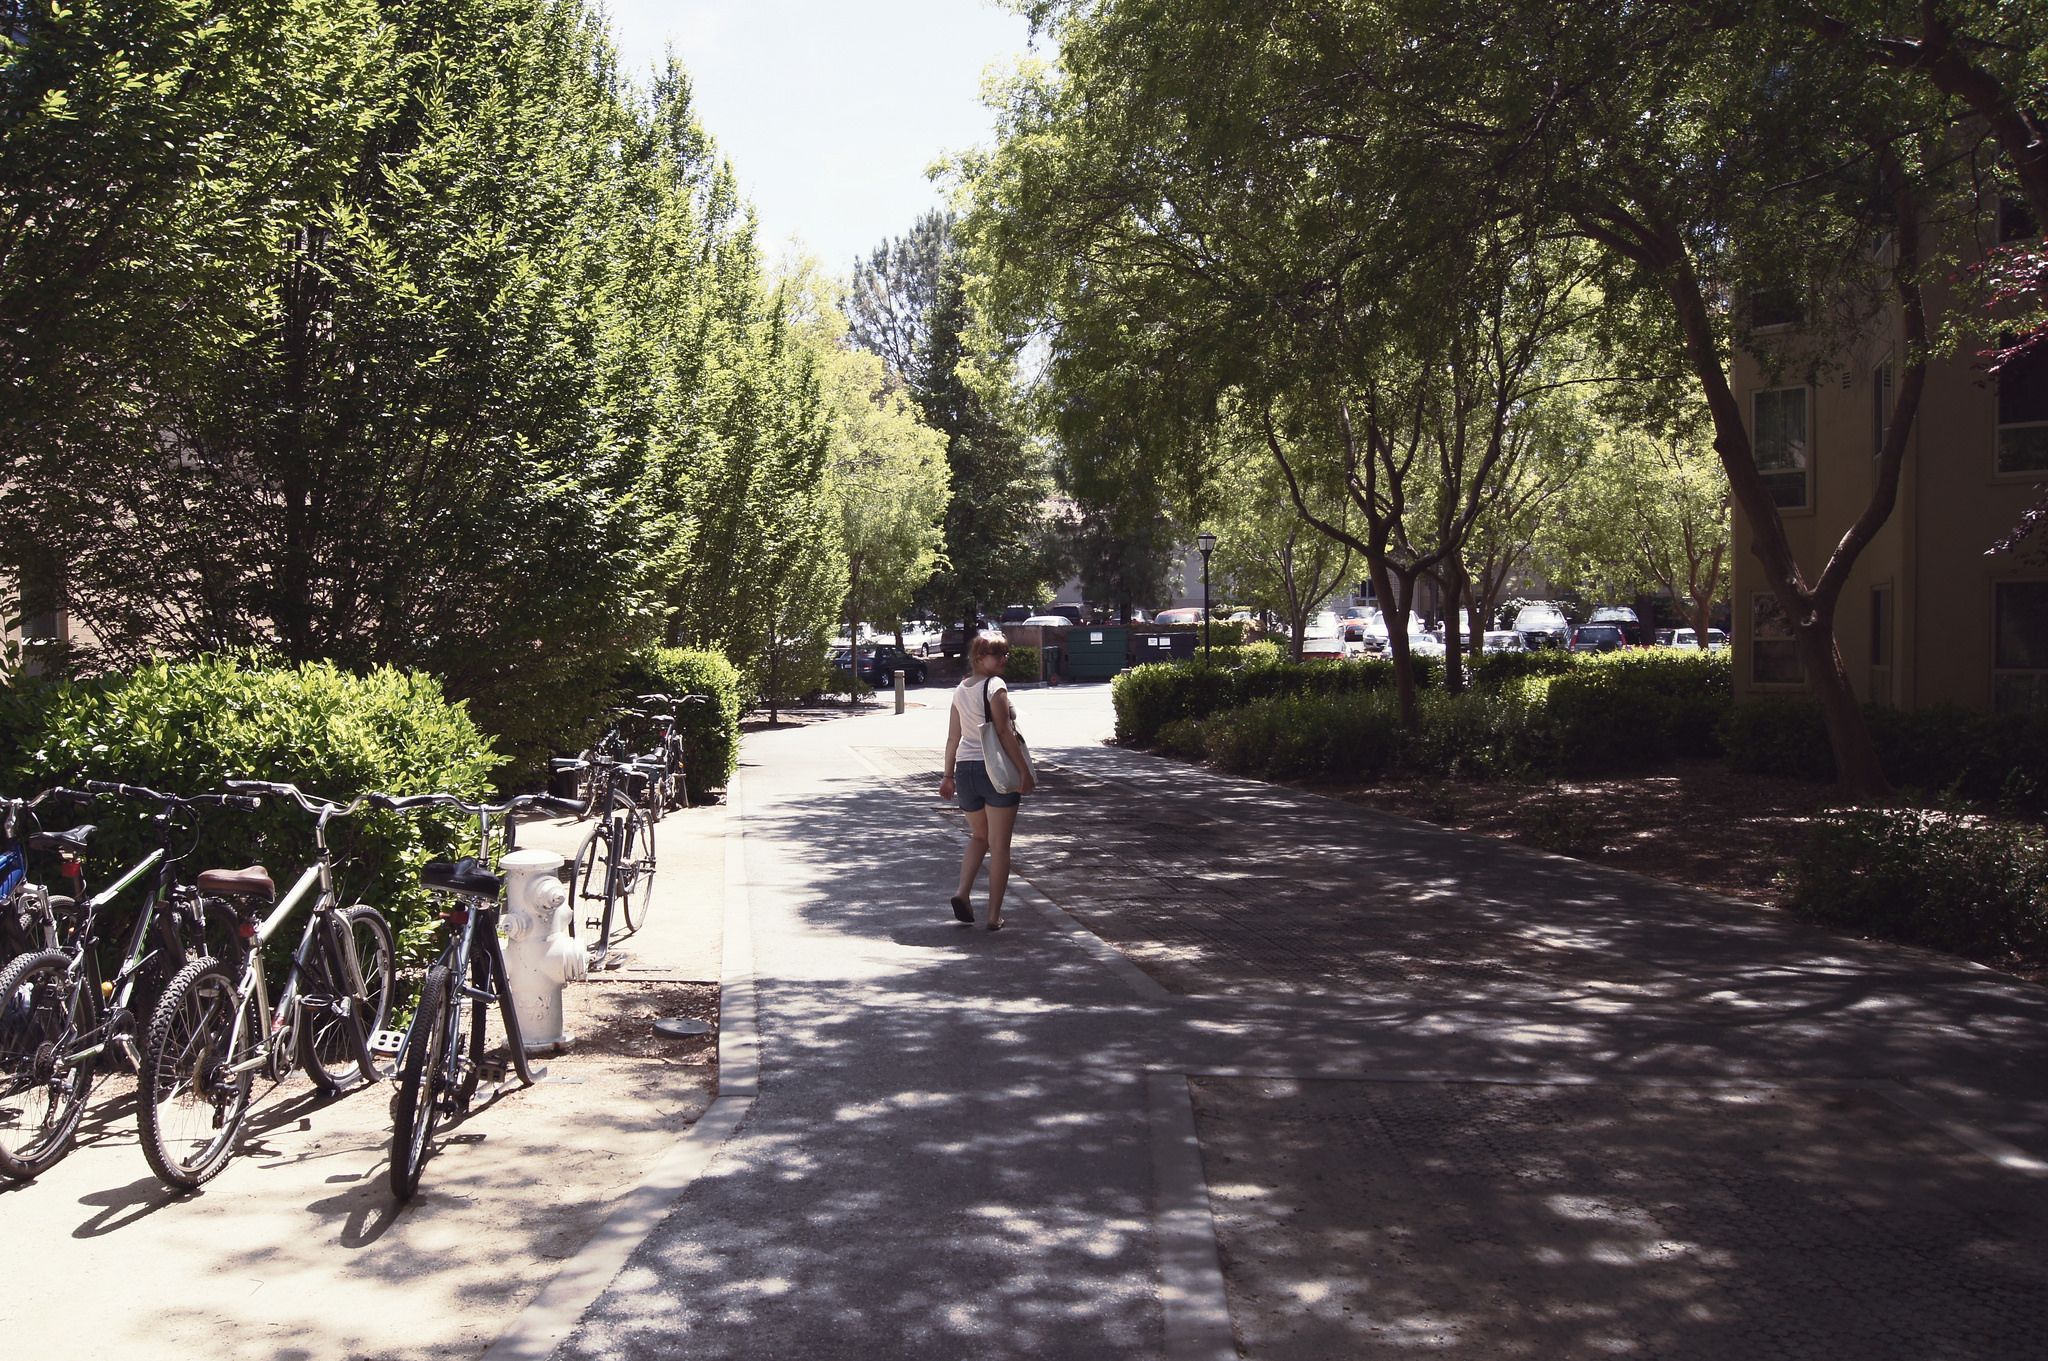 Soph Bonde / Argot Publications Inc    [Photo description: A distant view of a woman in shorts and a t-shirt walking away down a sun-dappled, tree-lined alley..]